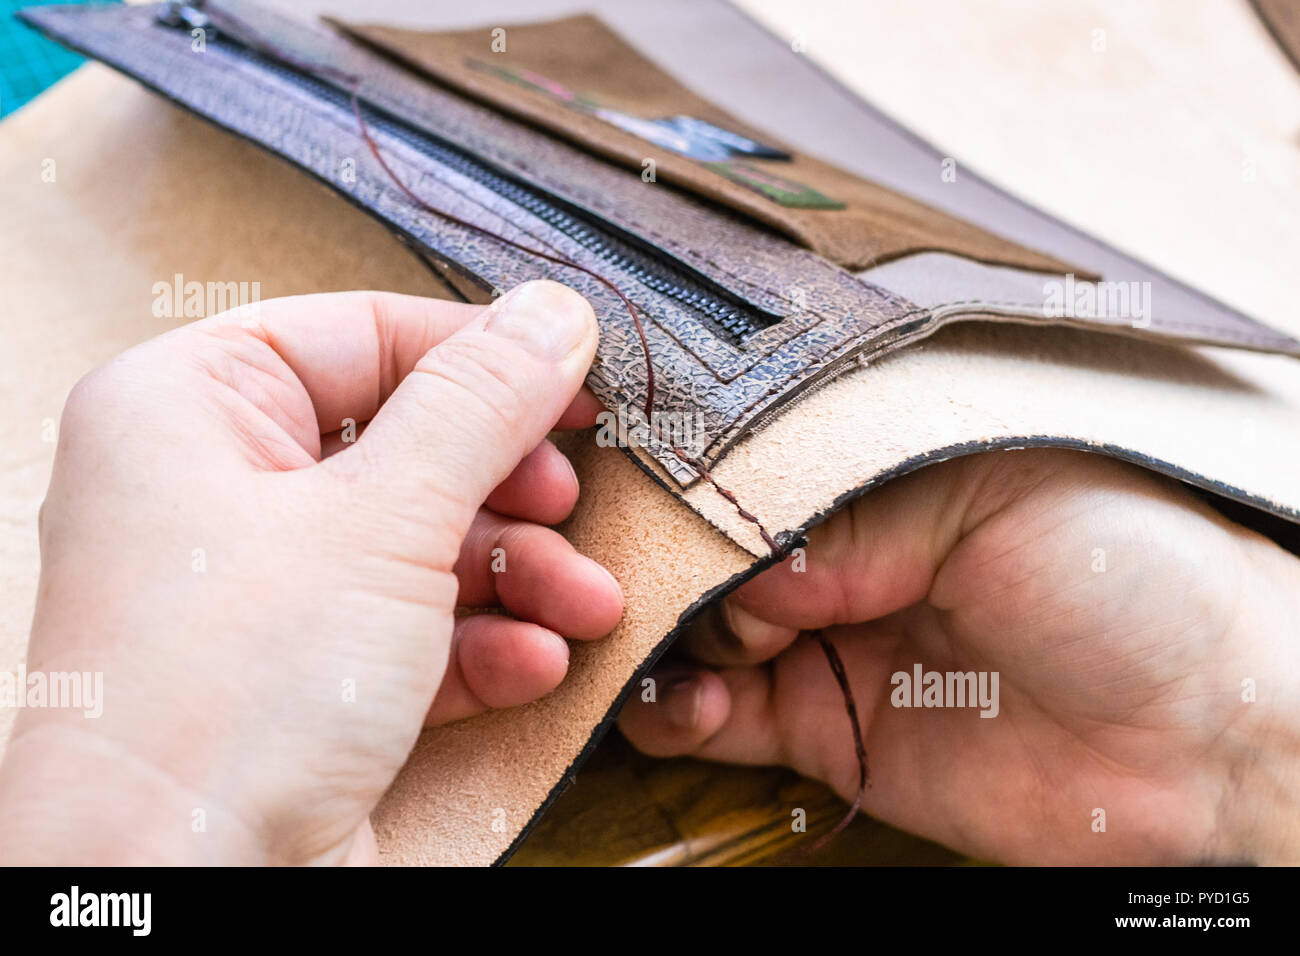 workshop of making the carved leather bag - craftsman stitches the inner pocket in leather handbag by needle with thread - Stock Image